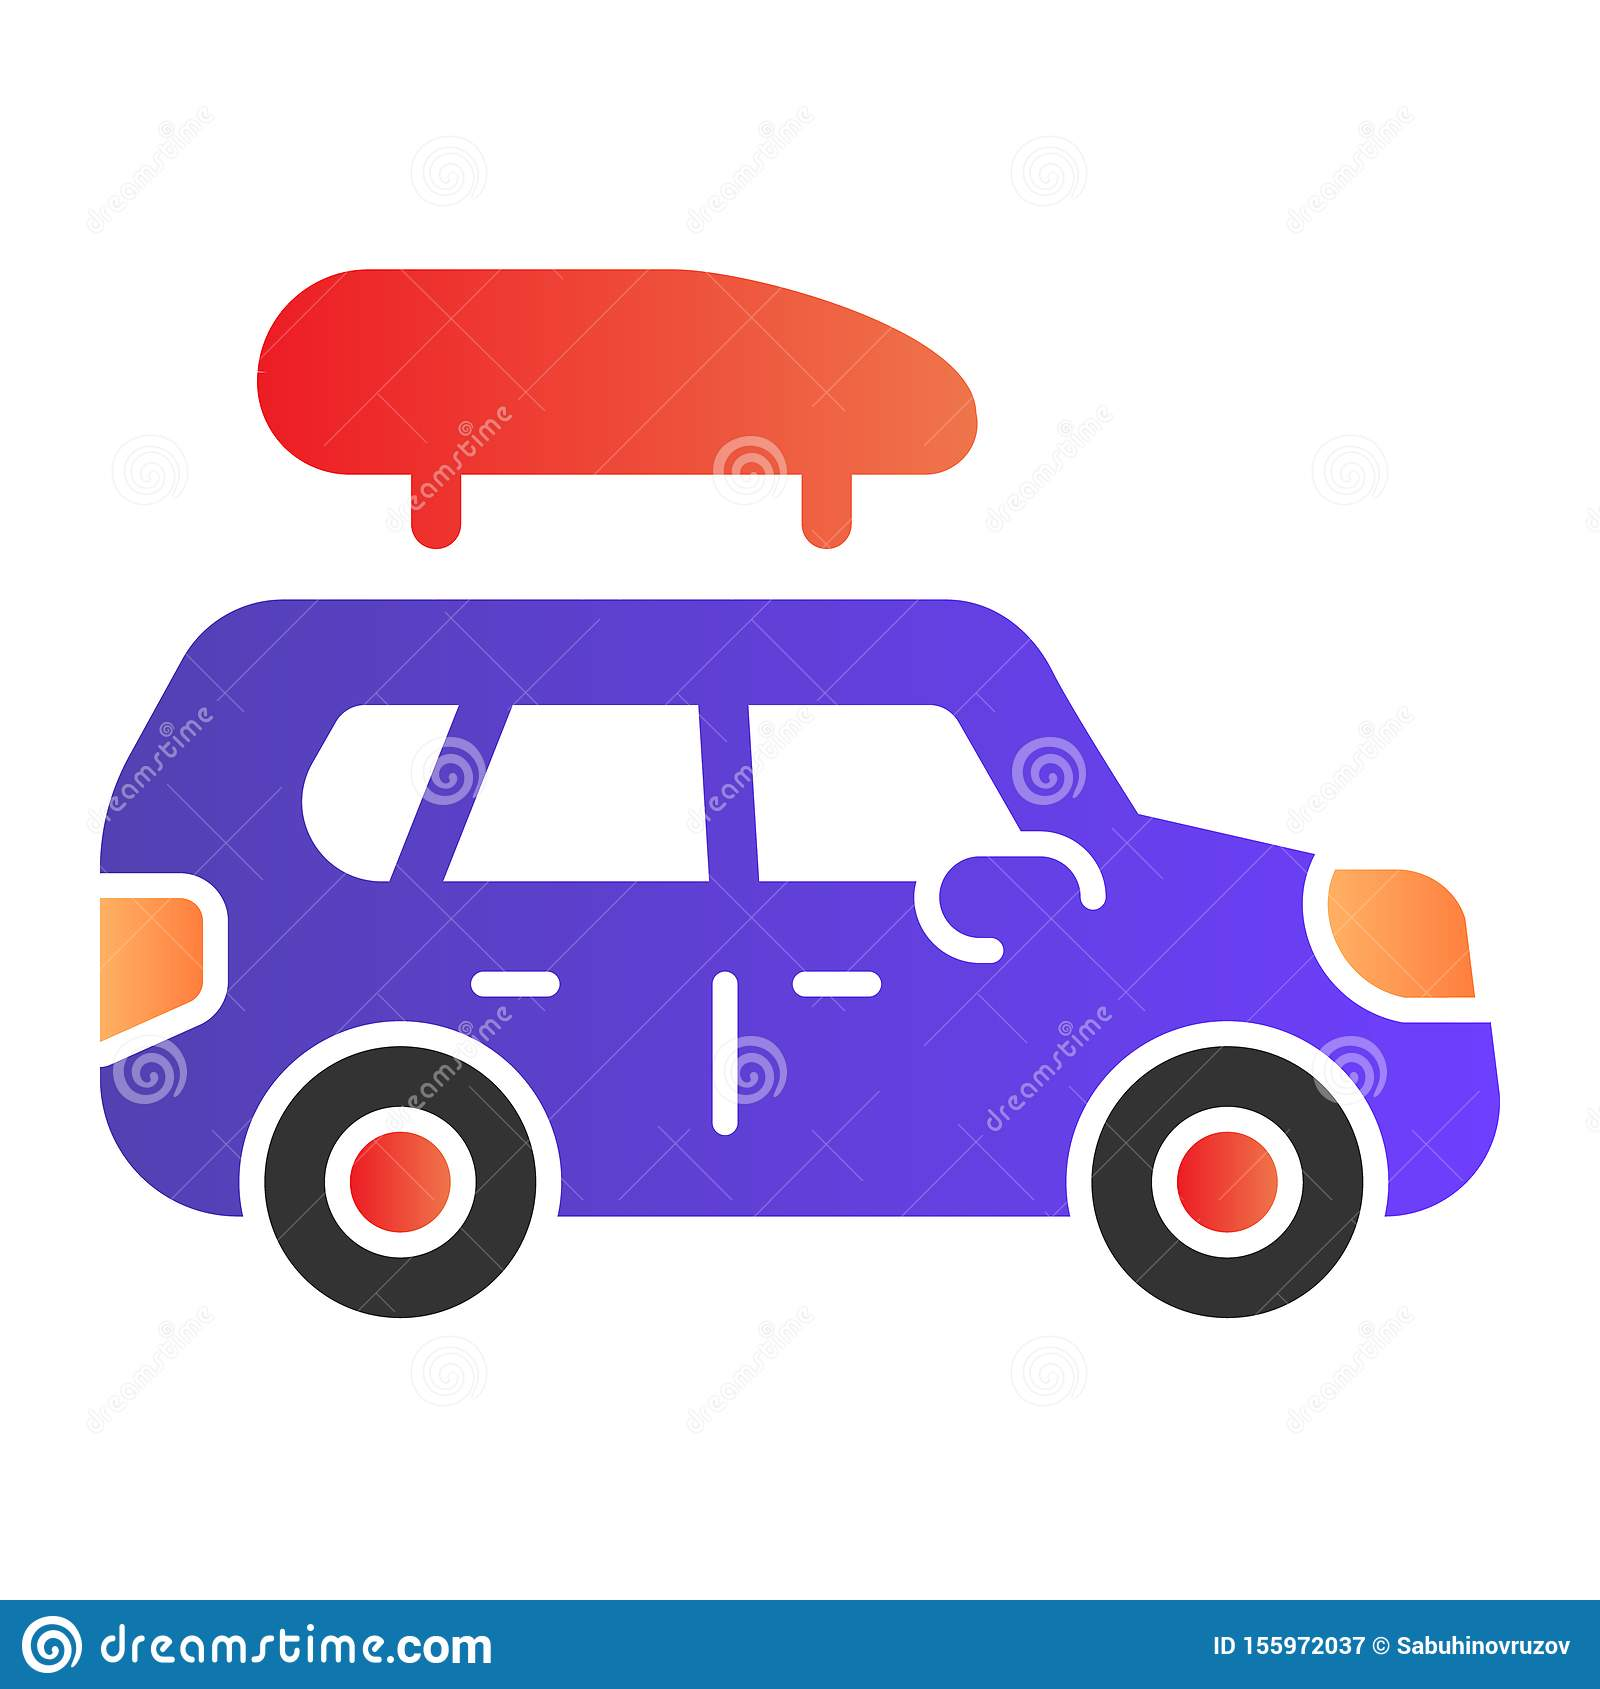 Boat trailer flat icon. Automotive with boat color icons in trendy flat style. Truck gradient style design, designed for